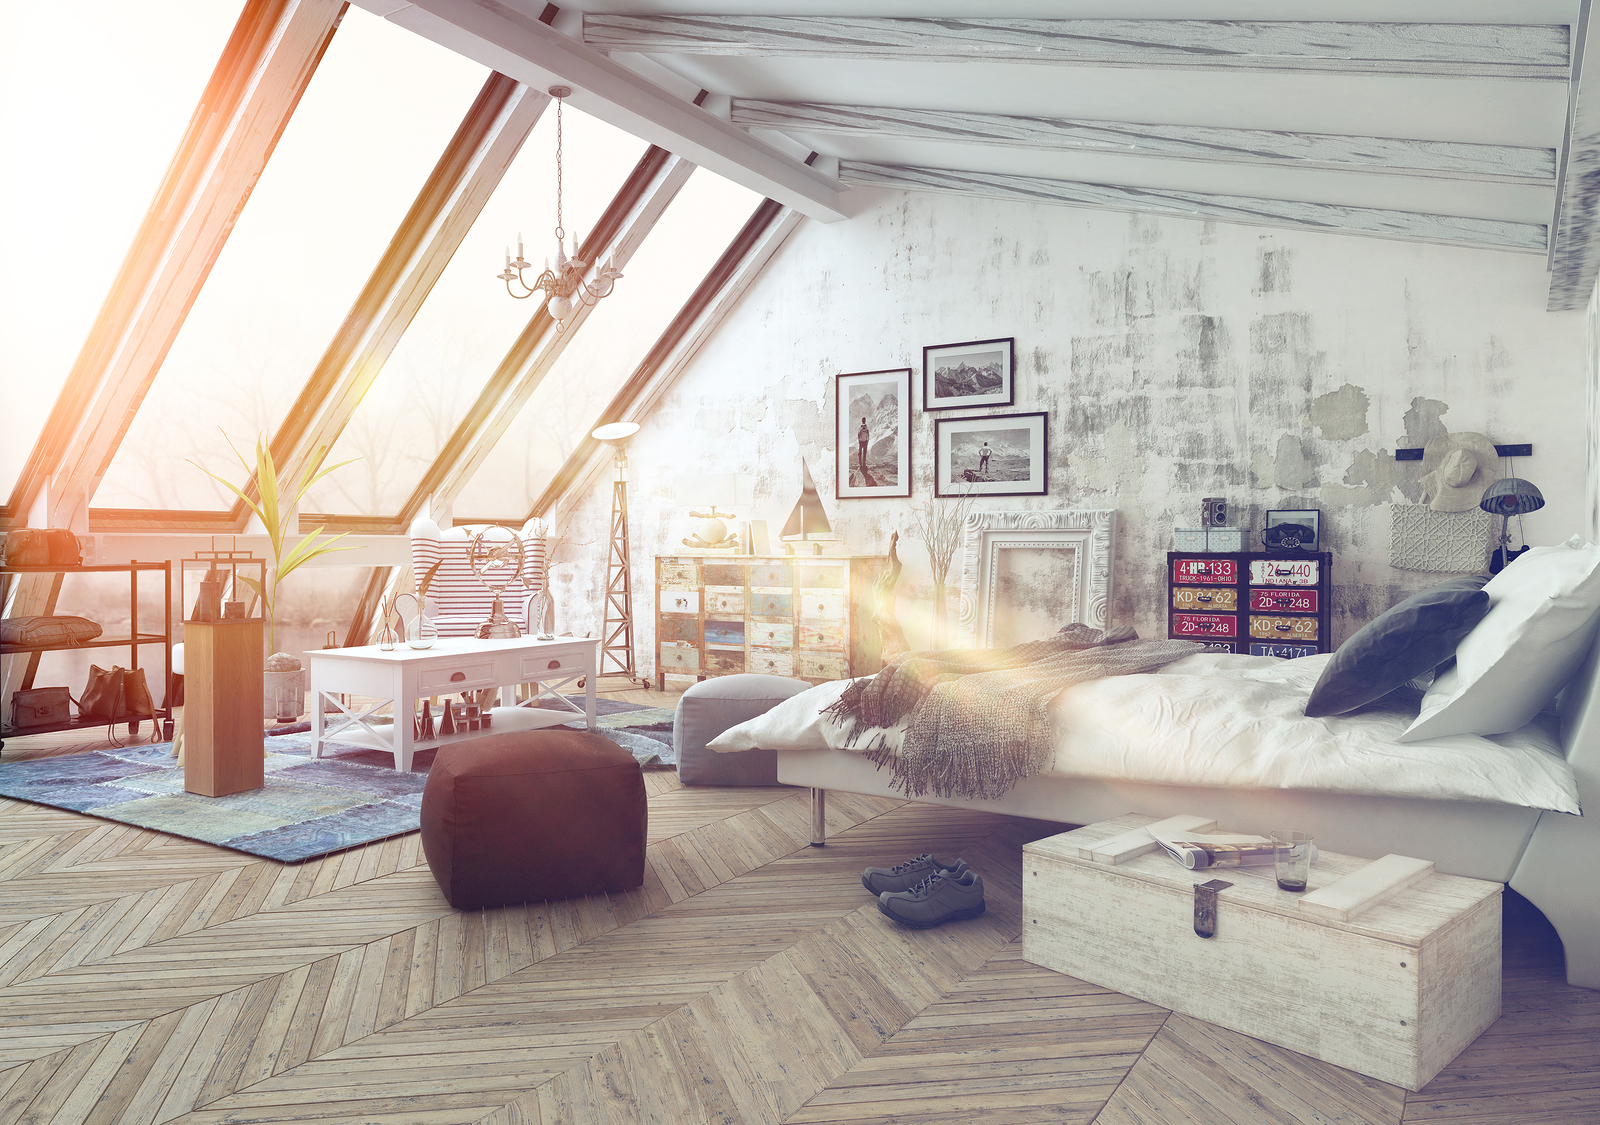 Cost Of Converting Attic To Bedroom The Real Price A Loft